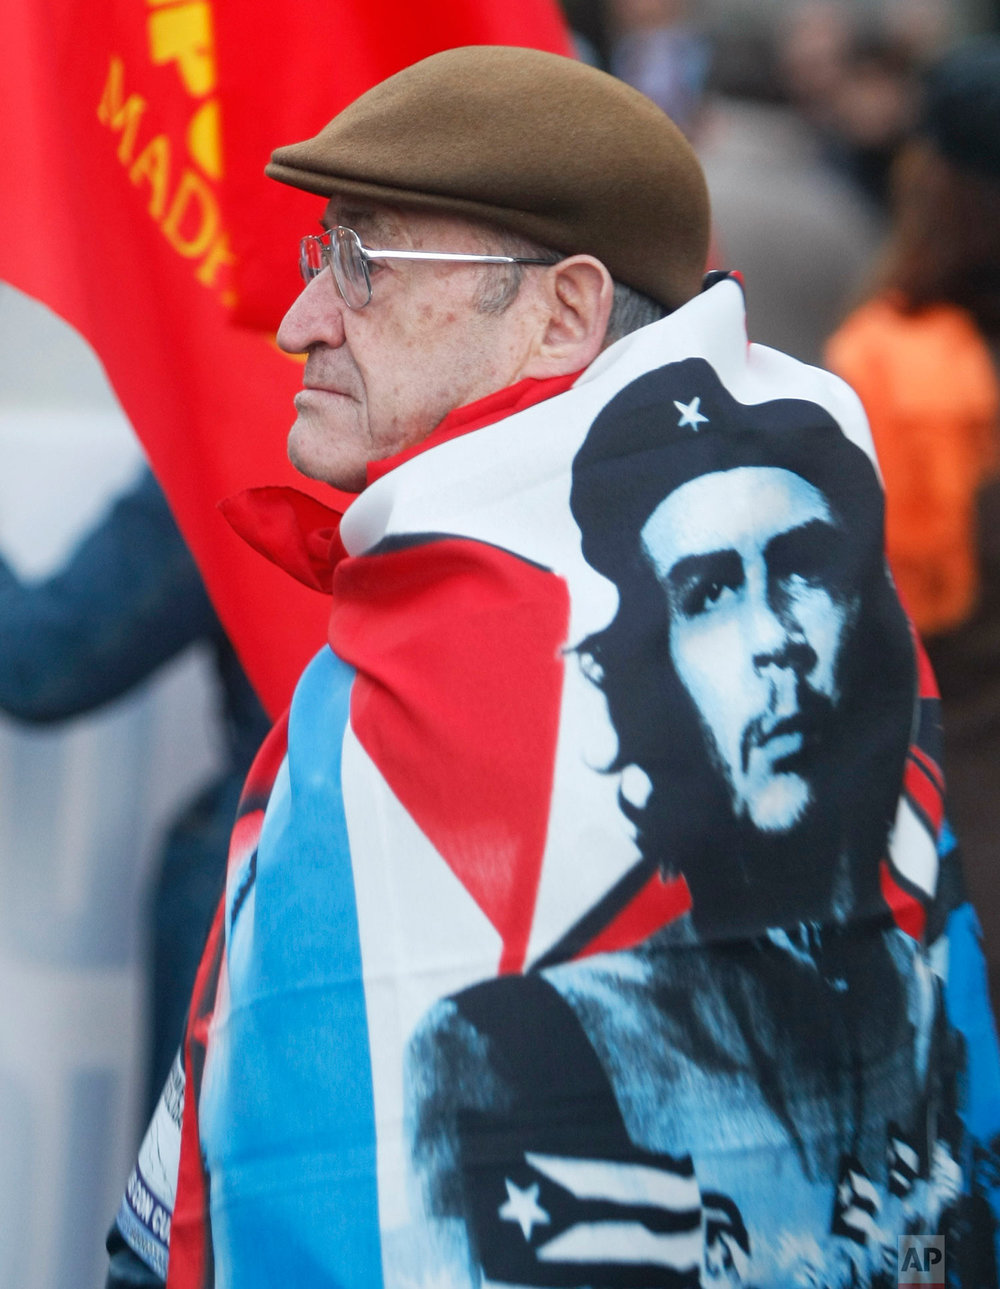 A demonstrator draped with a flag showing the face of Che Guevara, the legendary guerrilla and revolutionary icon, marches in Madrid Saturday Jan. 31, 2009  to mark the the 50th Anniversary of the Cuban Revolution. (AP Photo/Paul White)